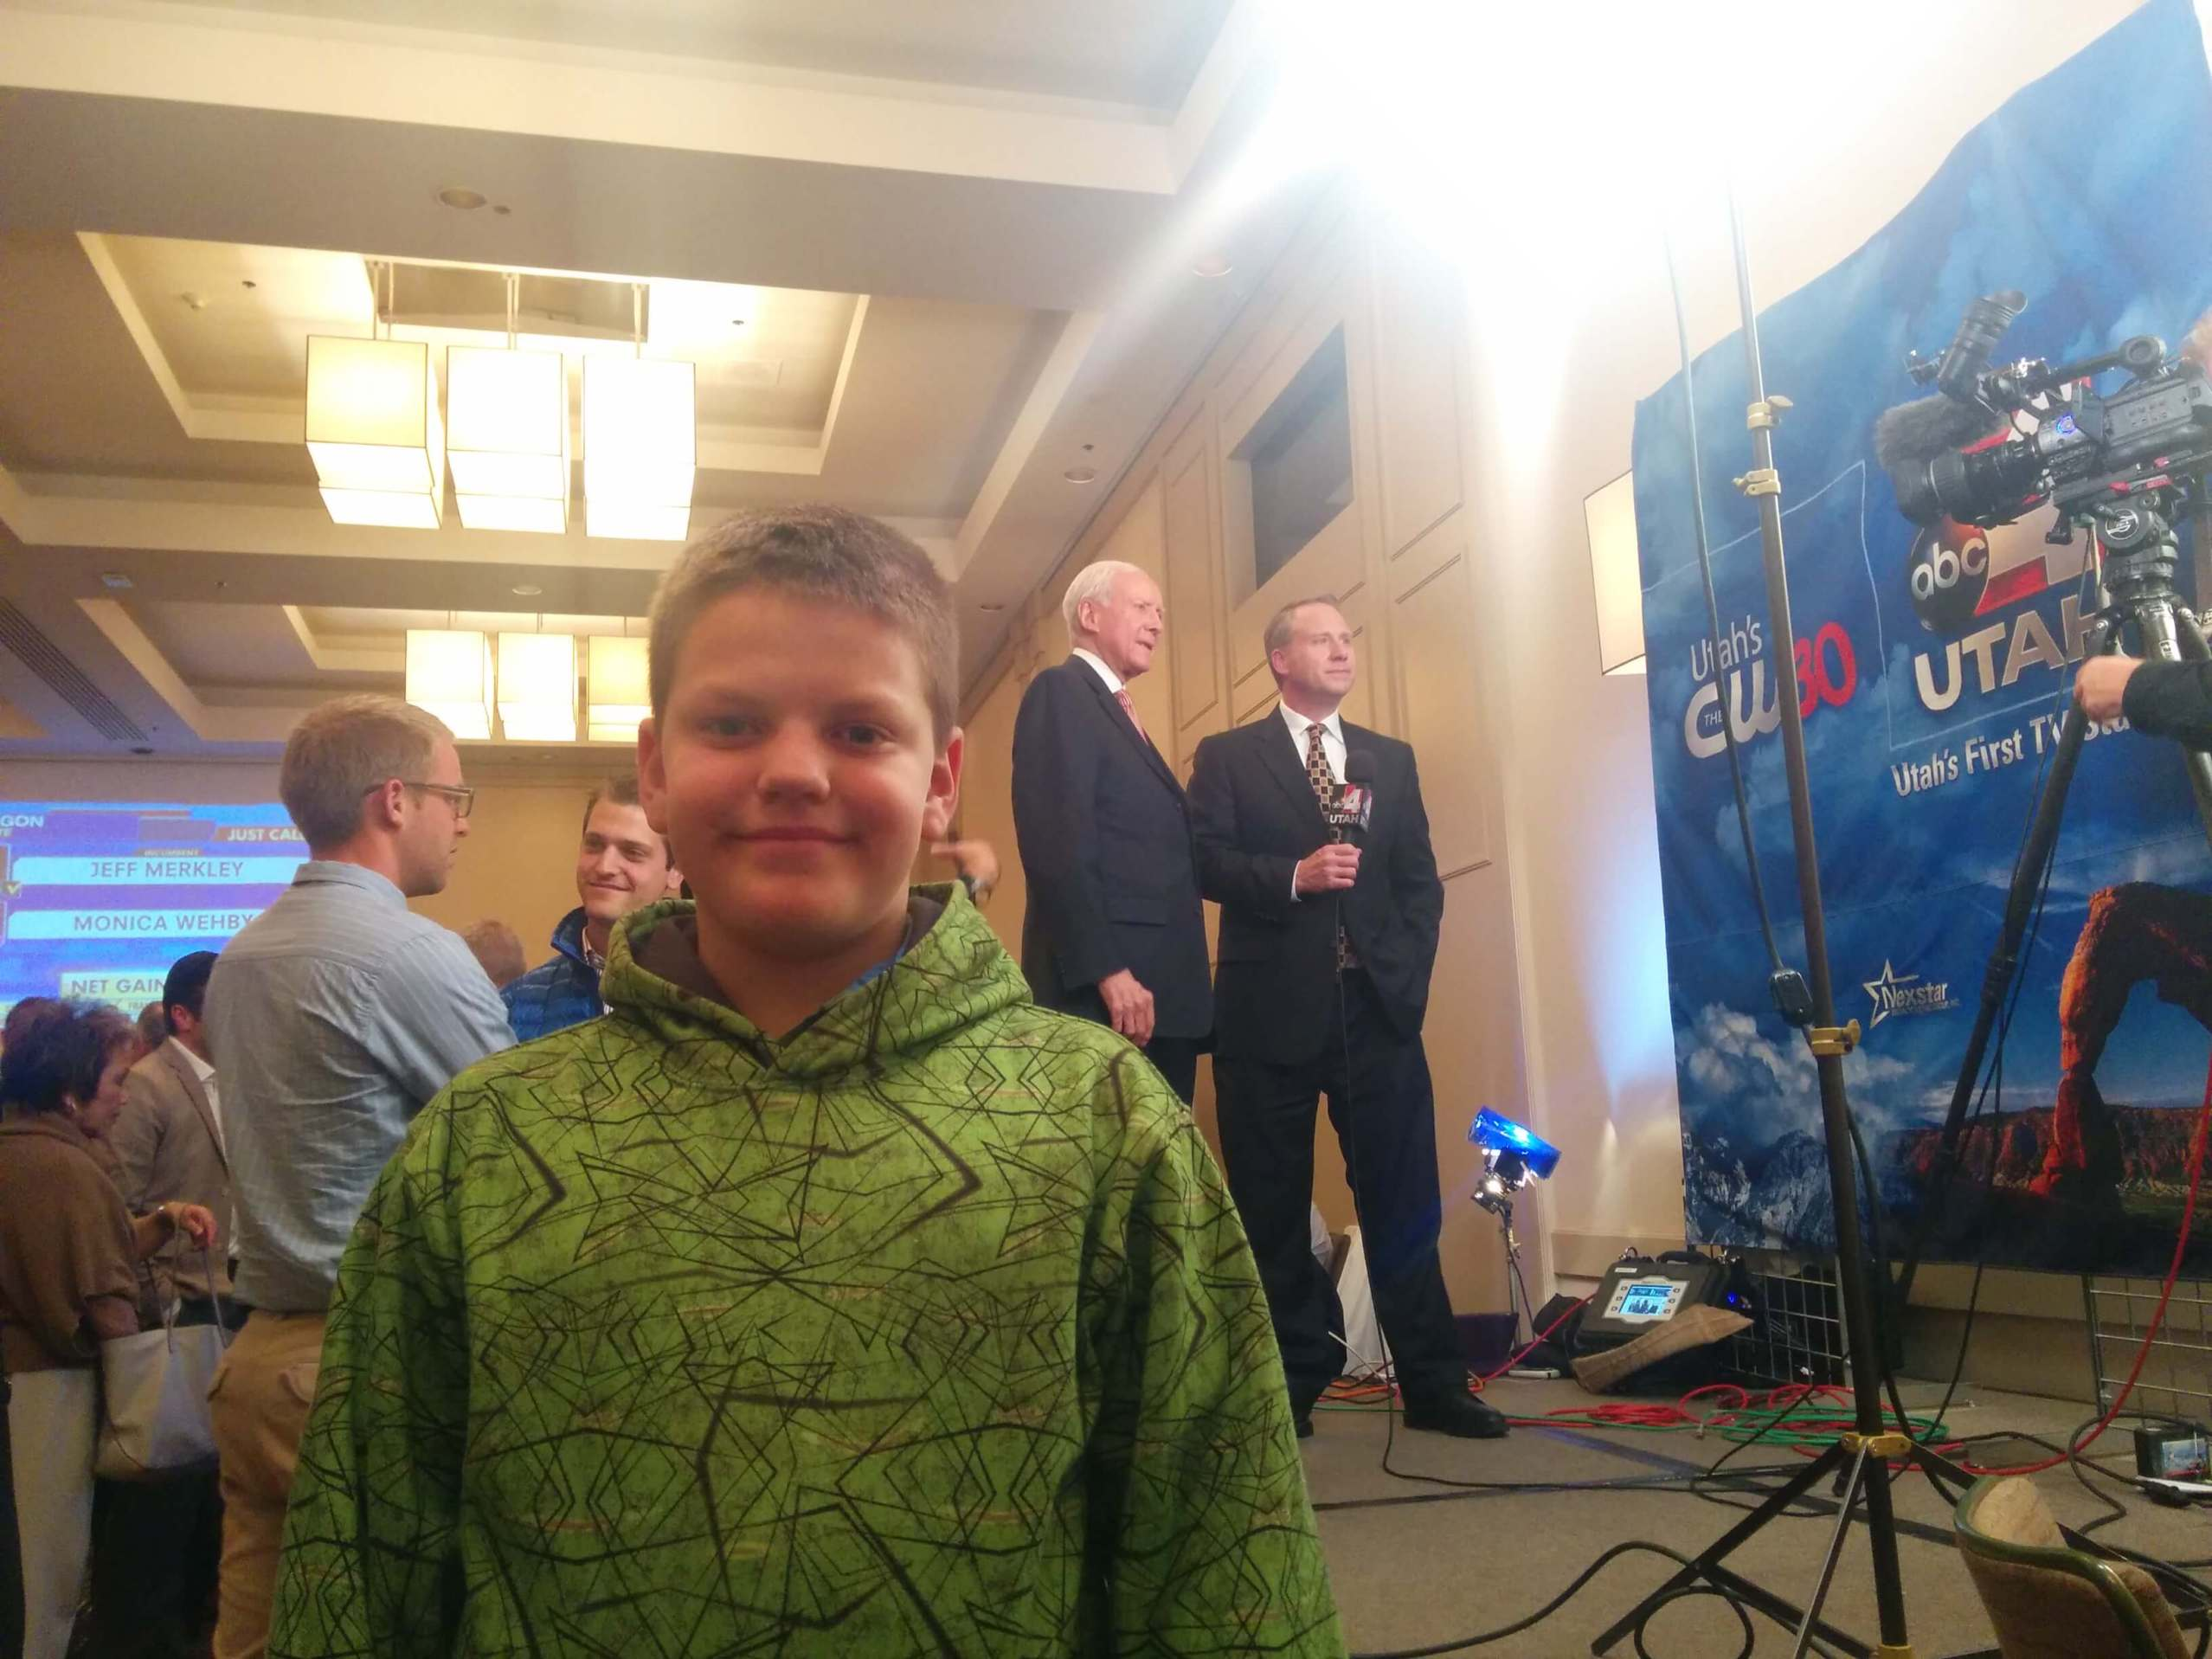 TARs recruit Porter poses with Senator Hatch durning an interview